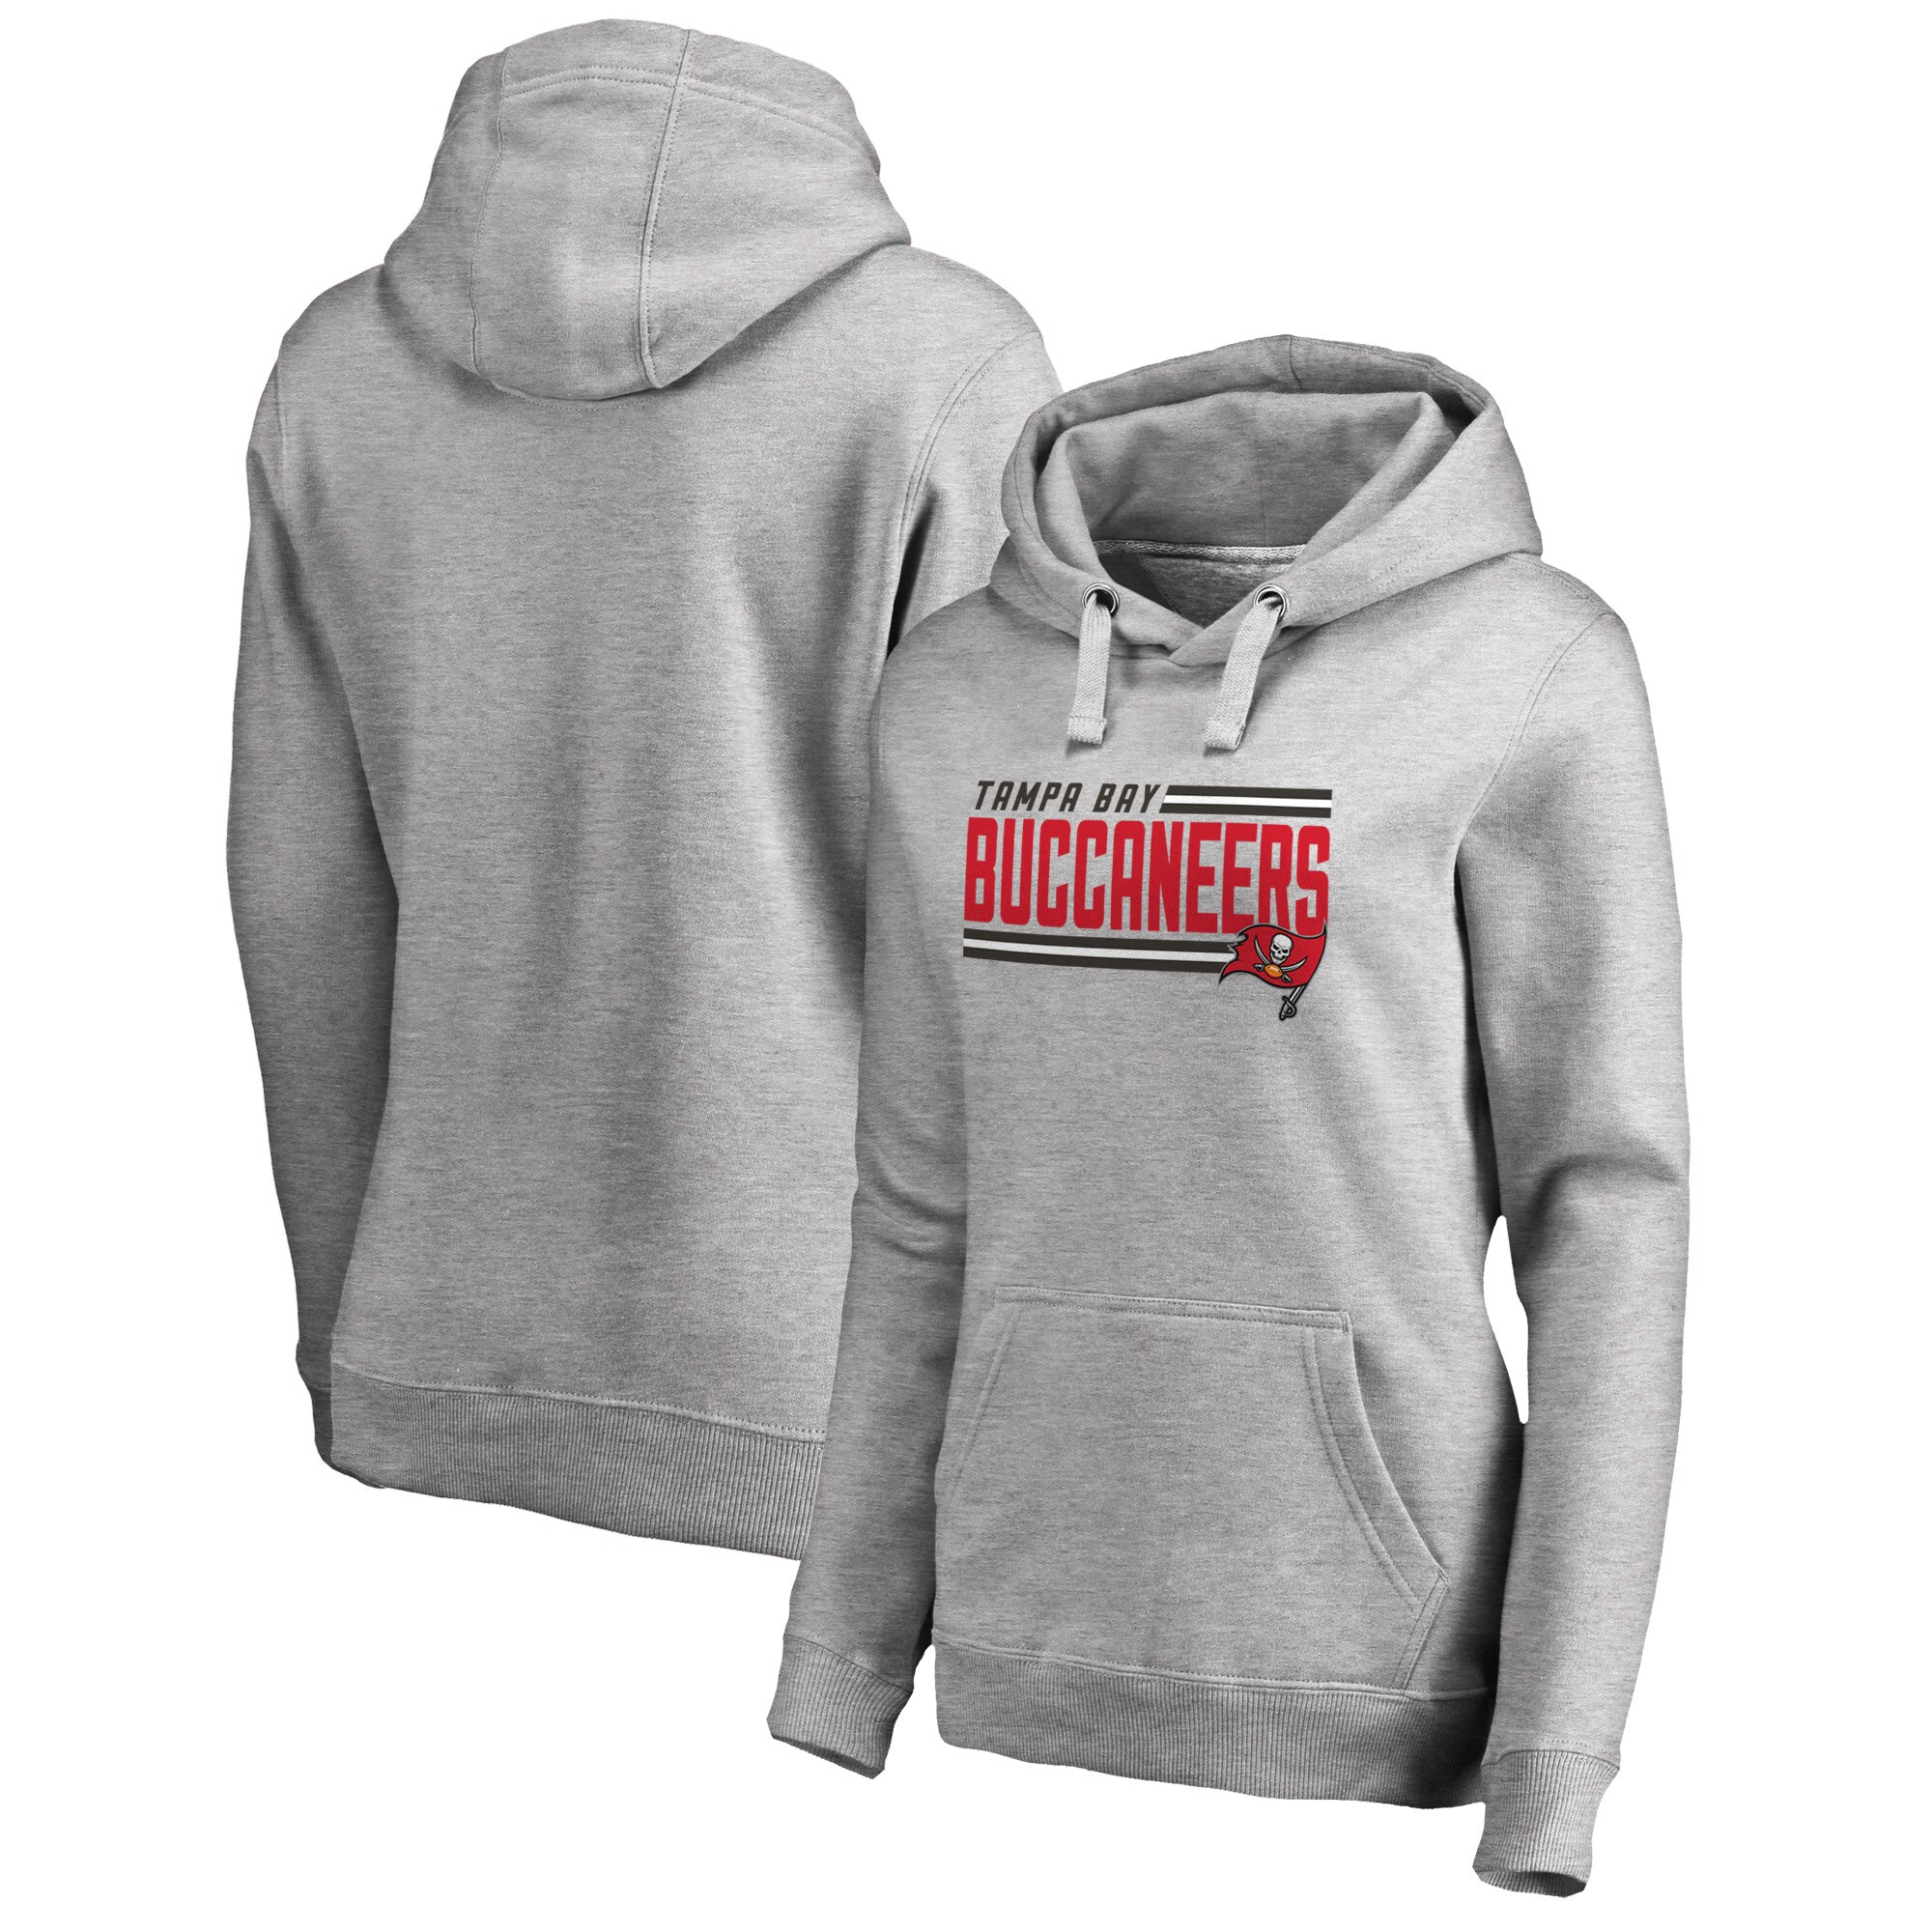 Tampa Bay Buccaneers NFL Pro Line by Fanatics Branded Women's Iconic Collection On Side Stripe Pullover Hoodie - Ash